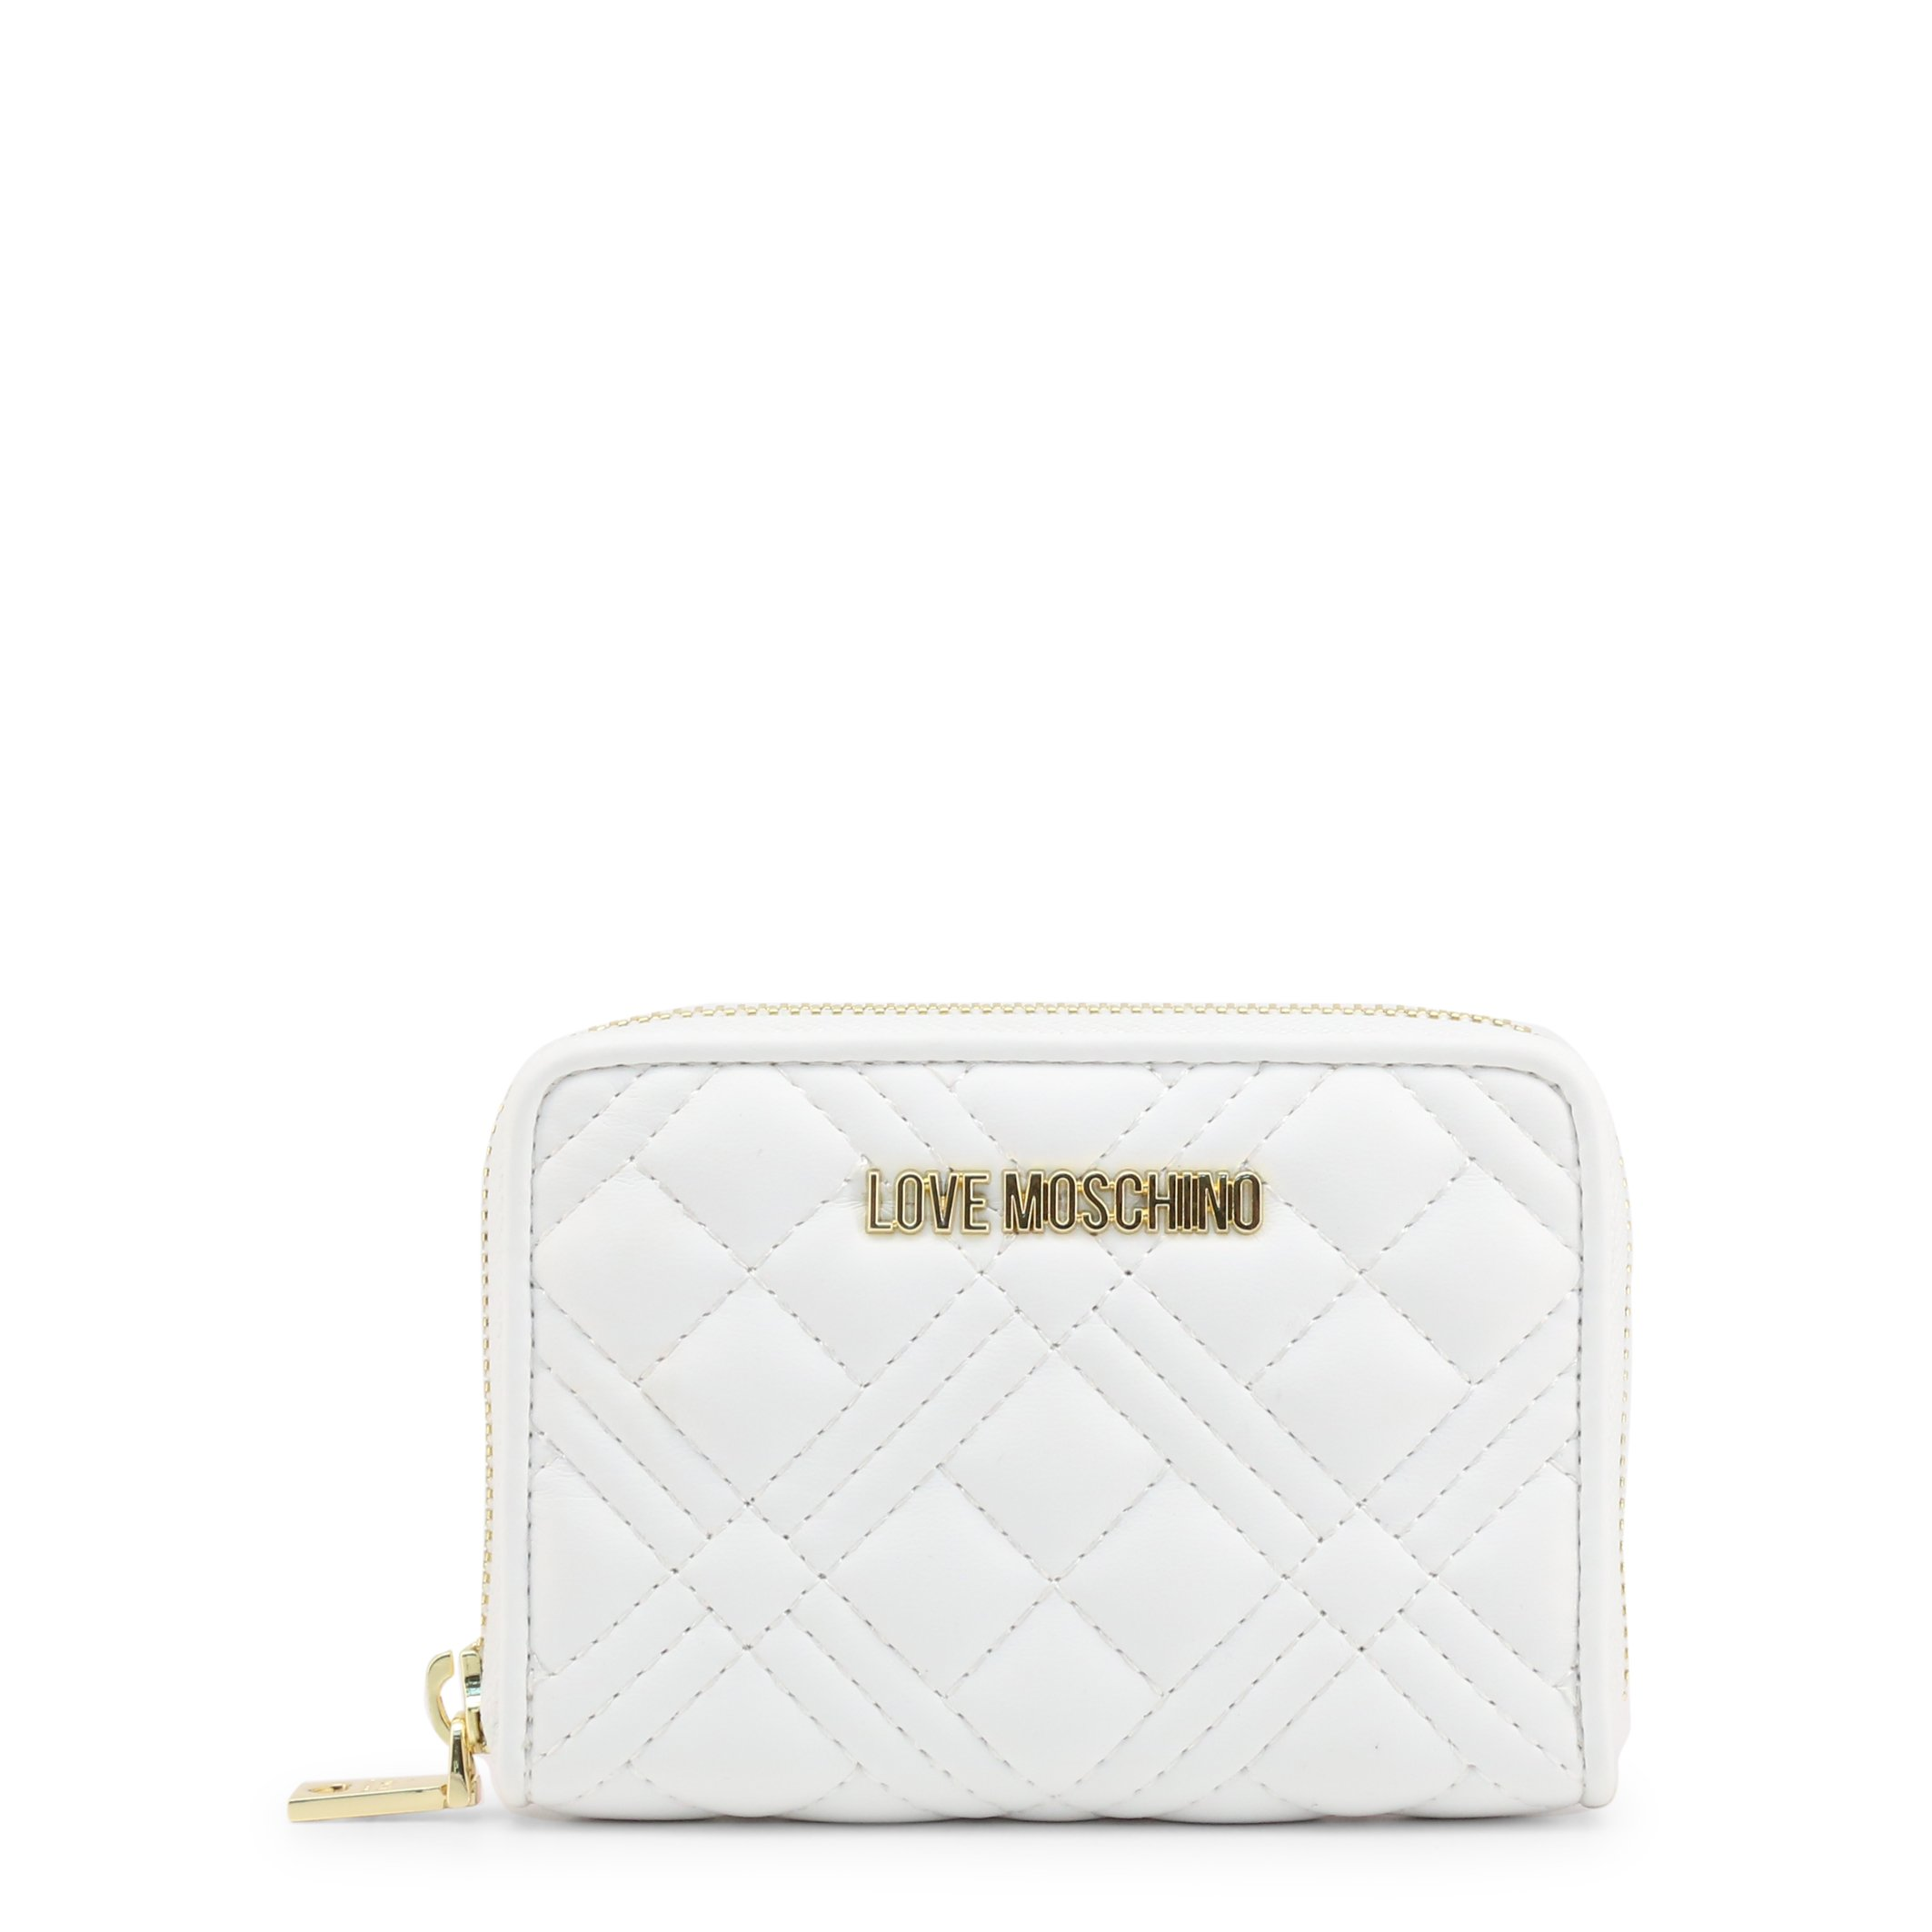 Love Moschino Women's Wallet Various Colours JC5602PP1CLA0 - white NOSIZE